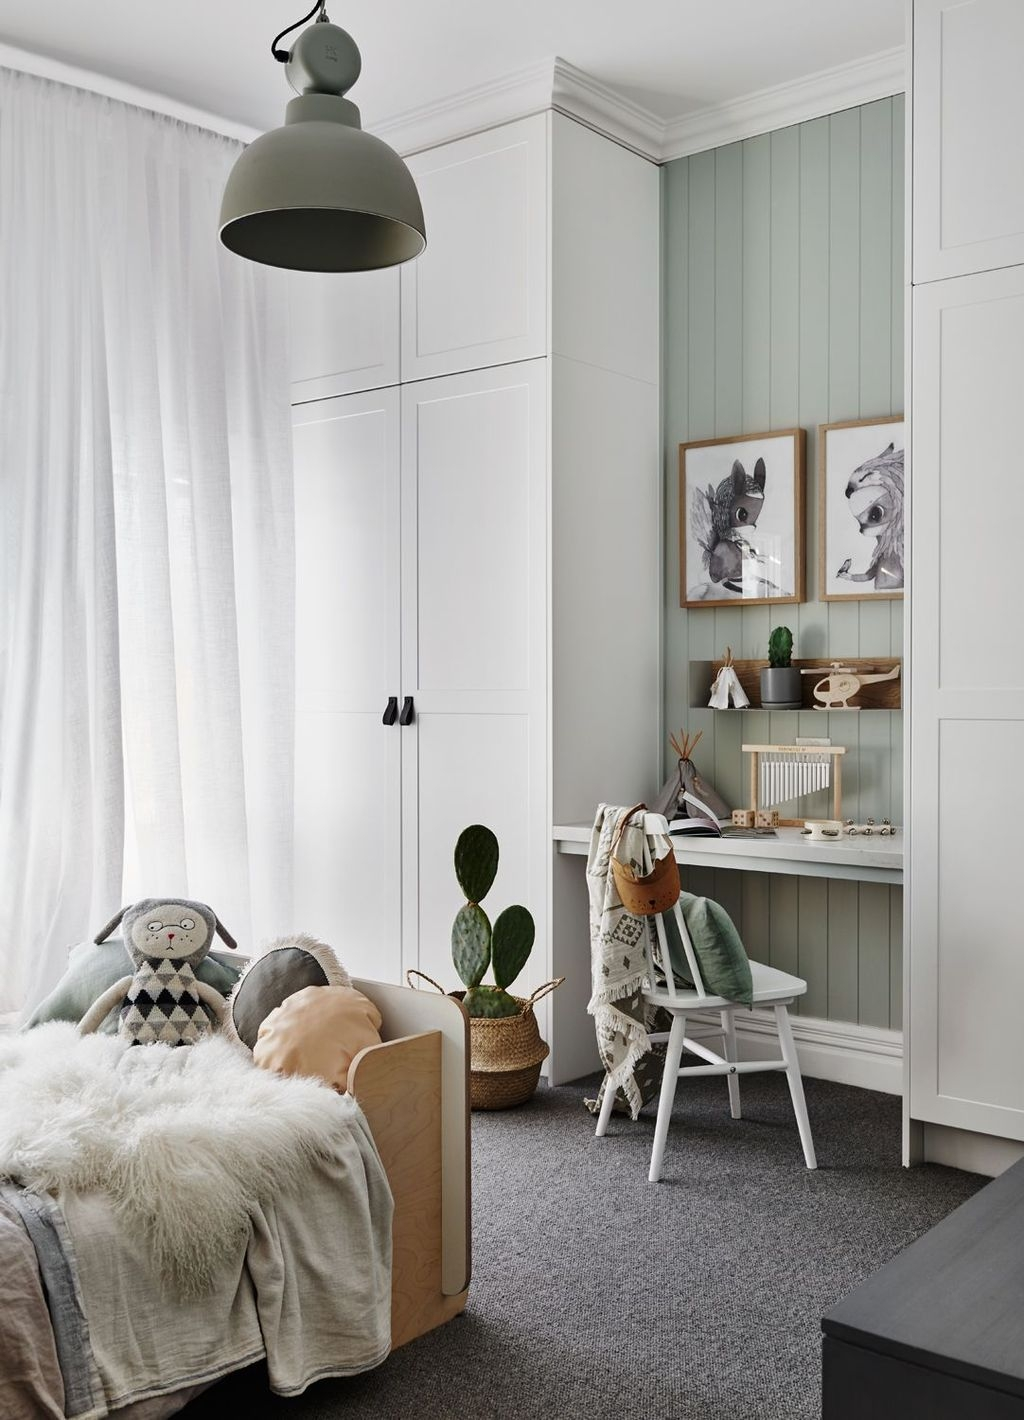 Comfy Kids Bedroom Decoration Ideas That Trendy Now30